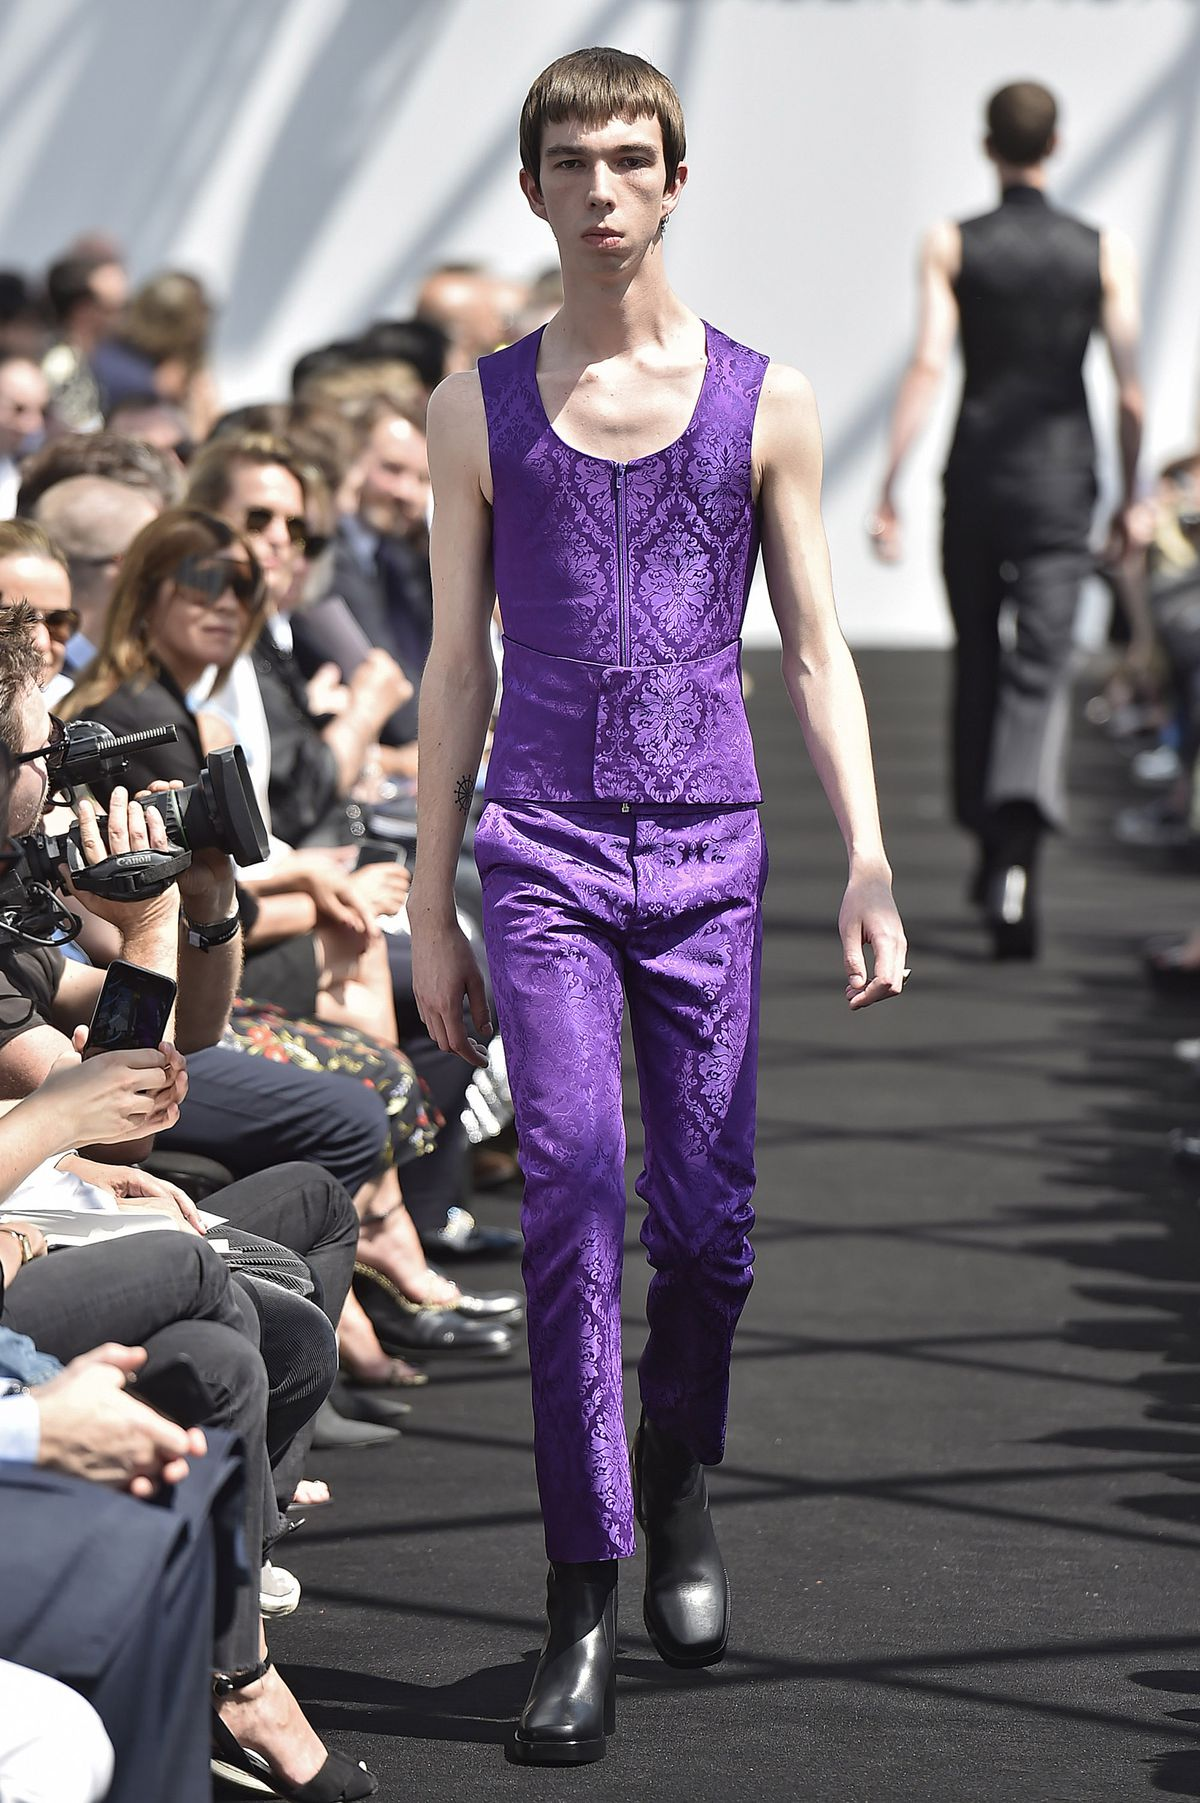 A model walks Balenciaga's spring 2017 menswear show wearing a bright purple vest and trousers.